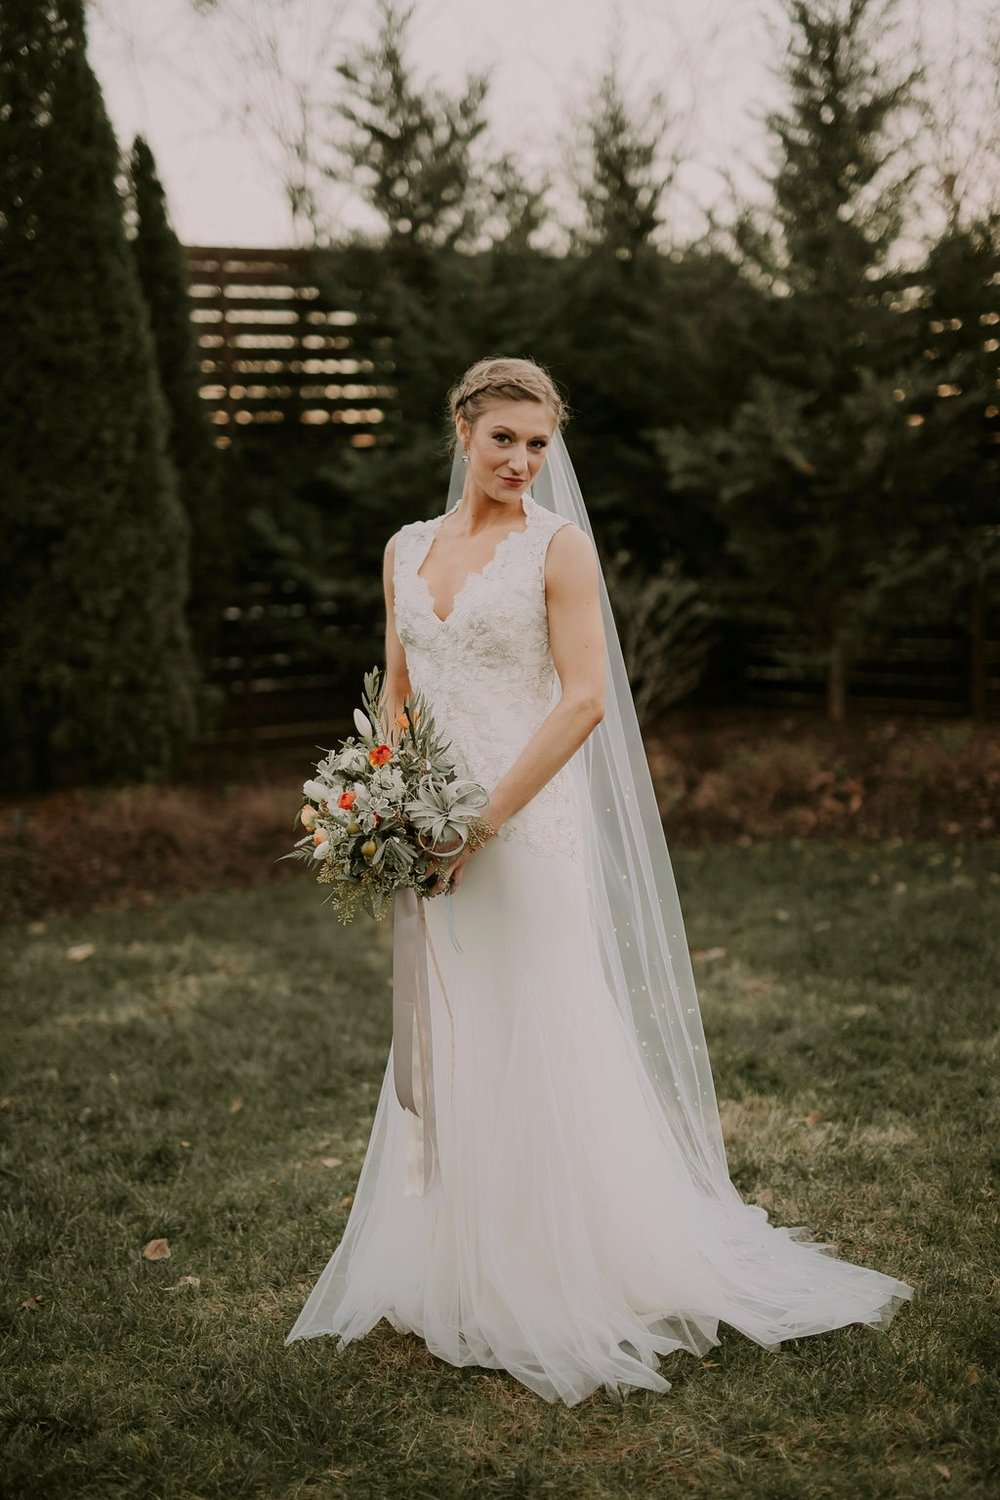 Nashville Bride Guide: Cordelle